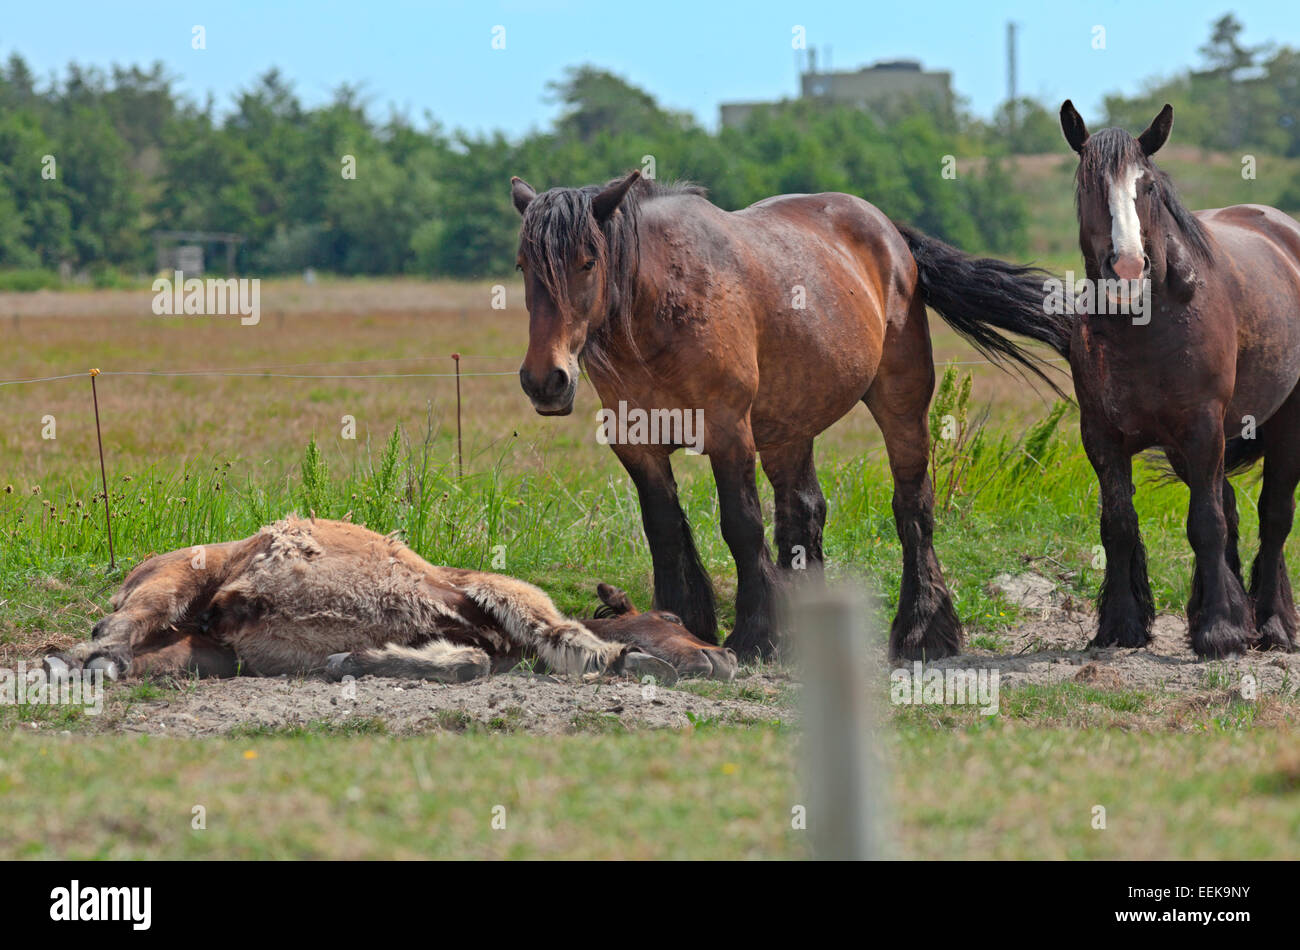 Horses Standing In Sunshine On Green Grass Inside Electric